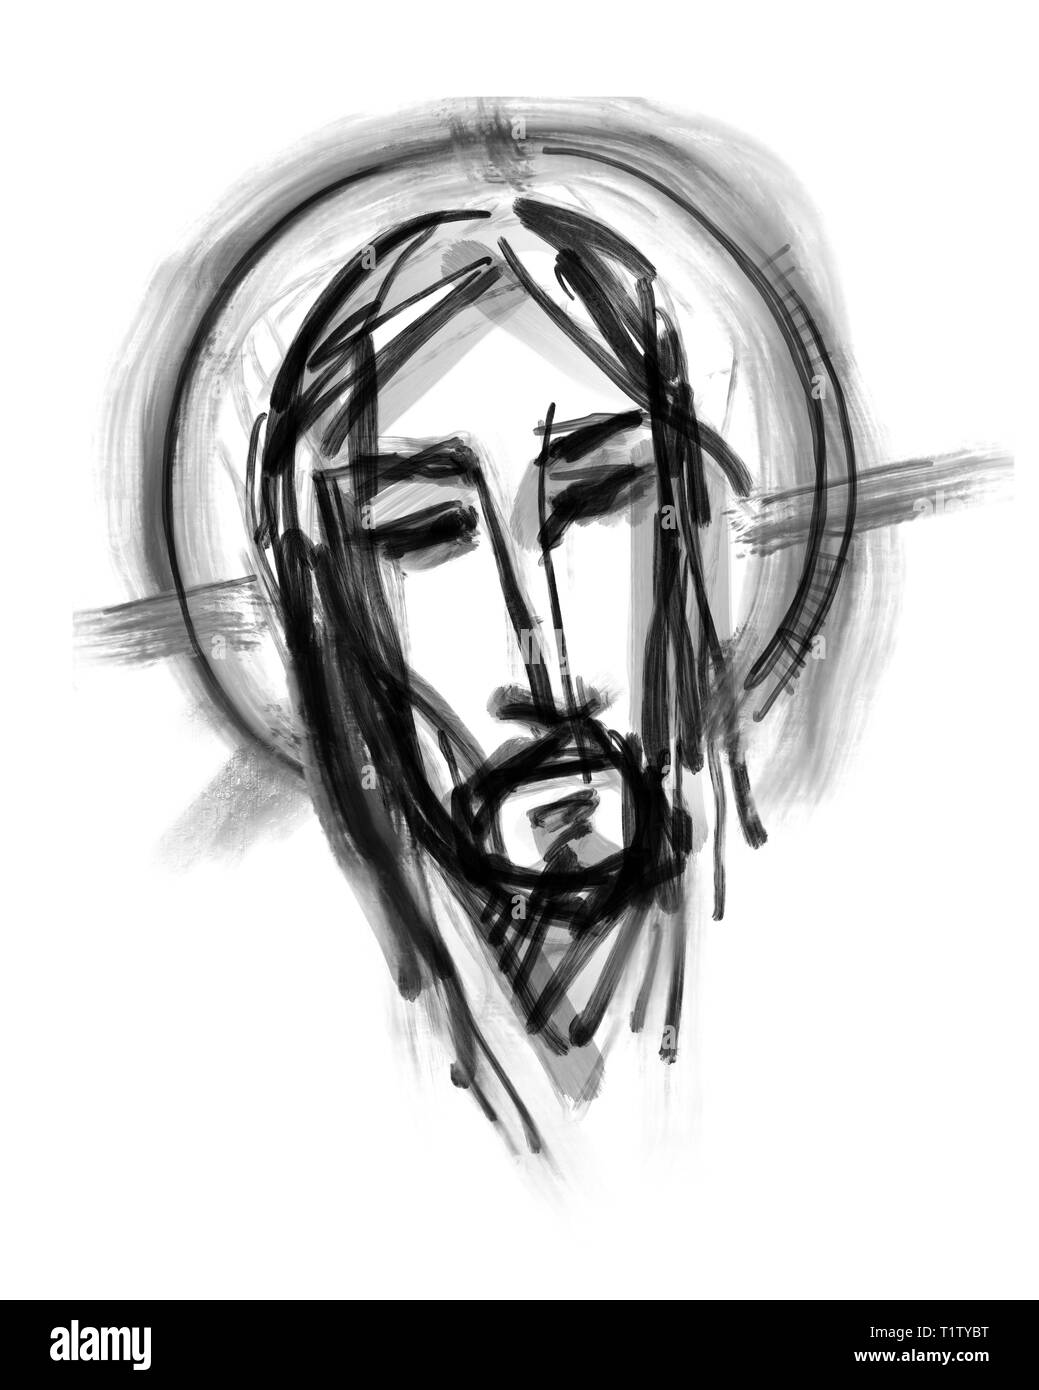 Hand drawn illustration or drawing of jesus christ face stock image